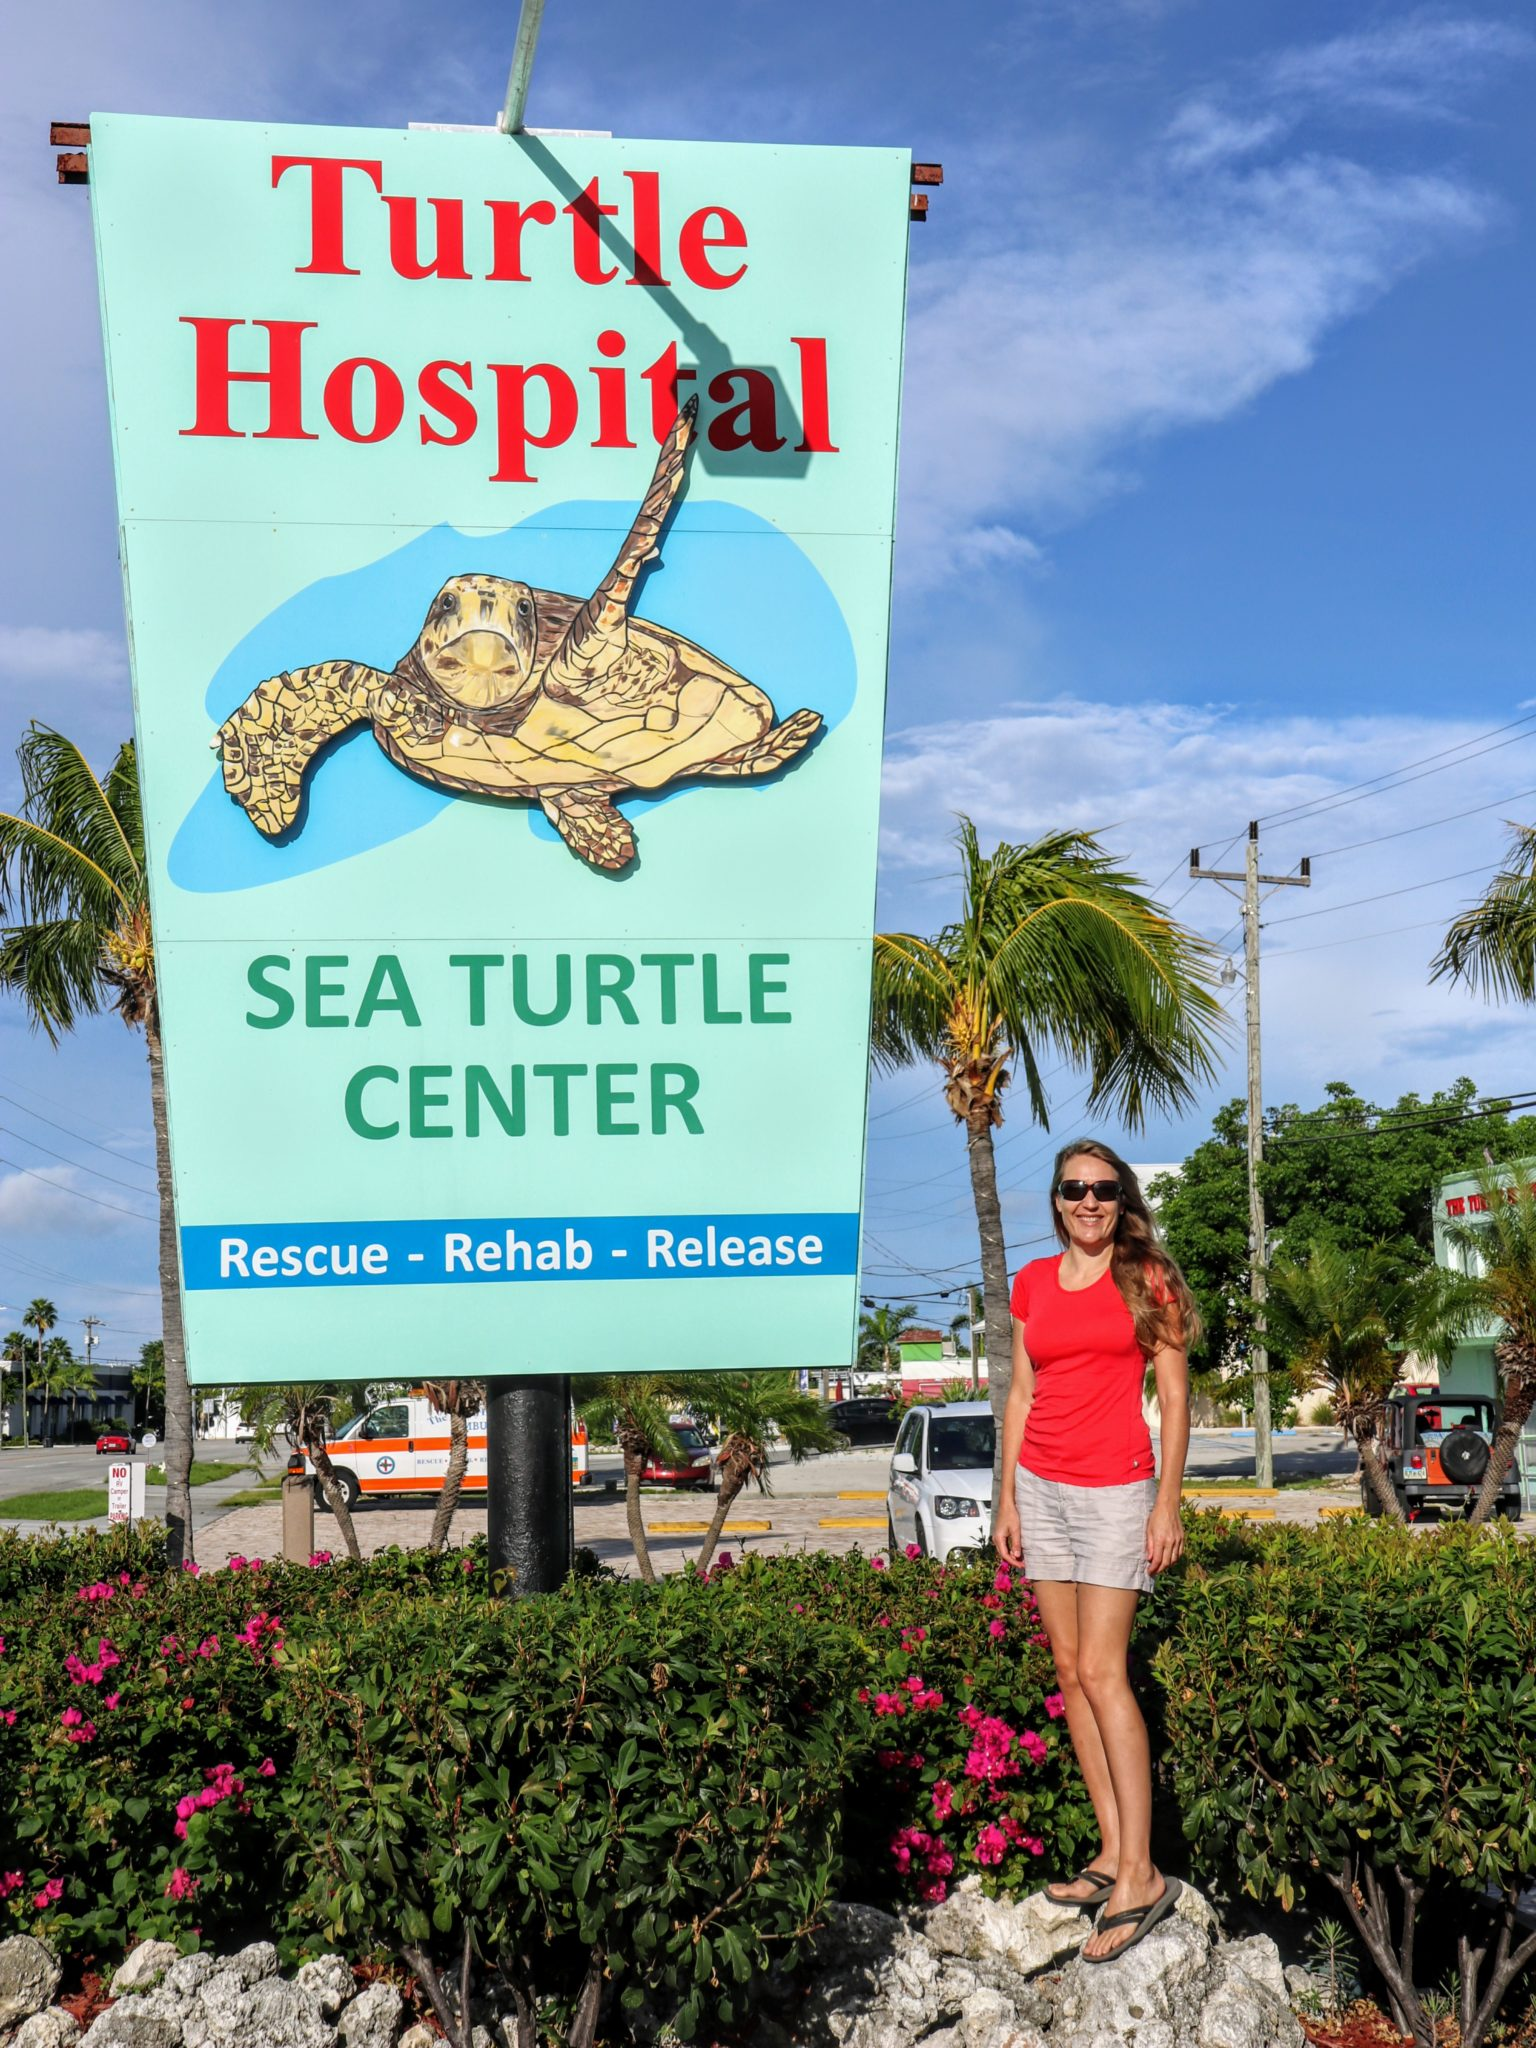 The author of this article standing next to the Turtle Hospital sign.